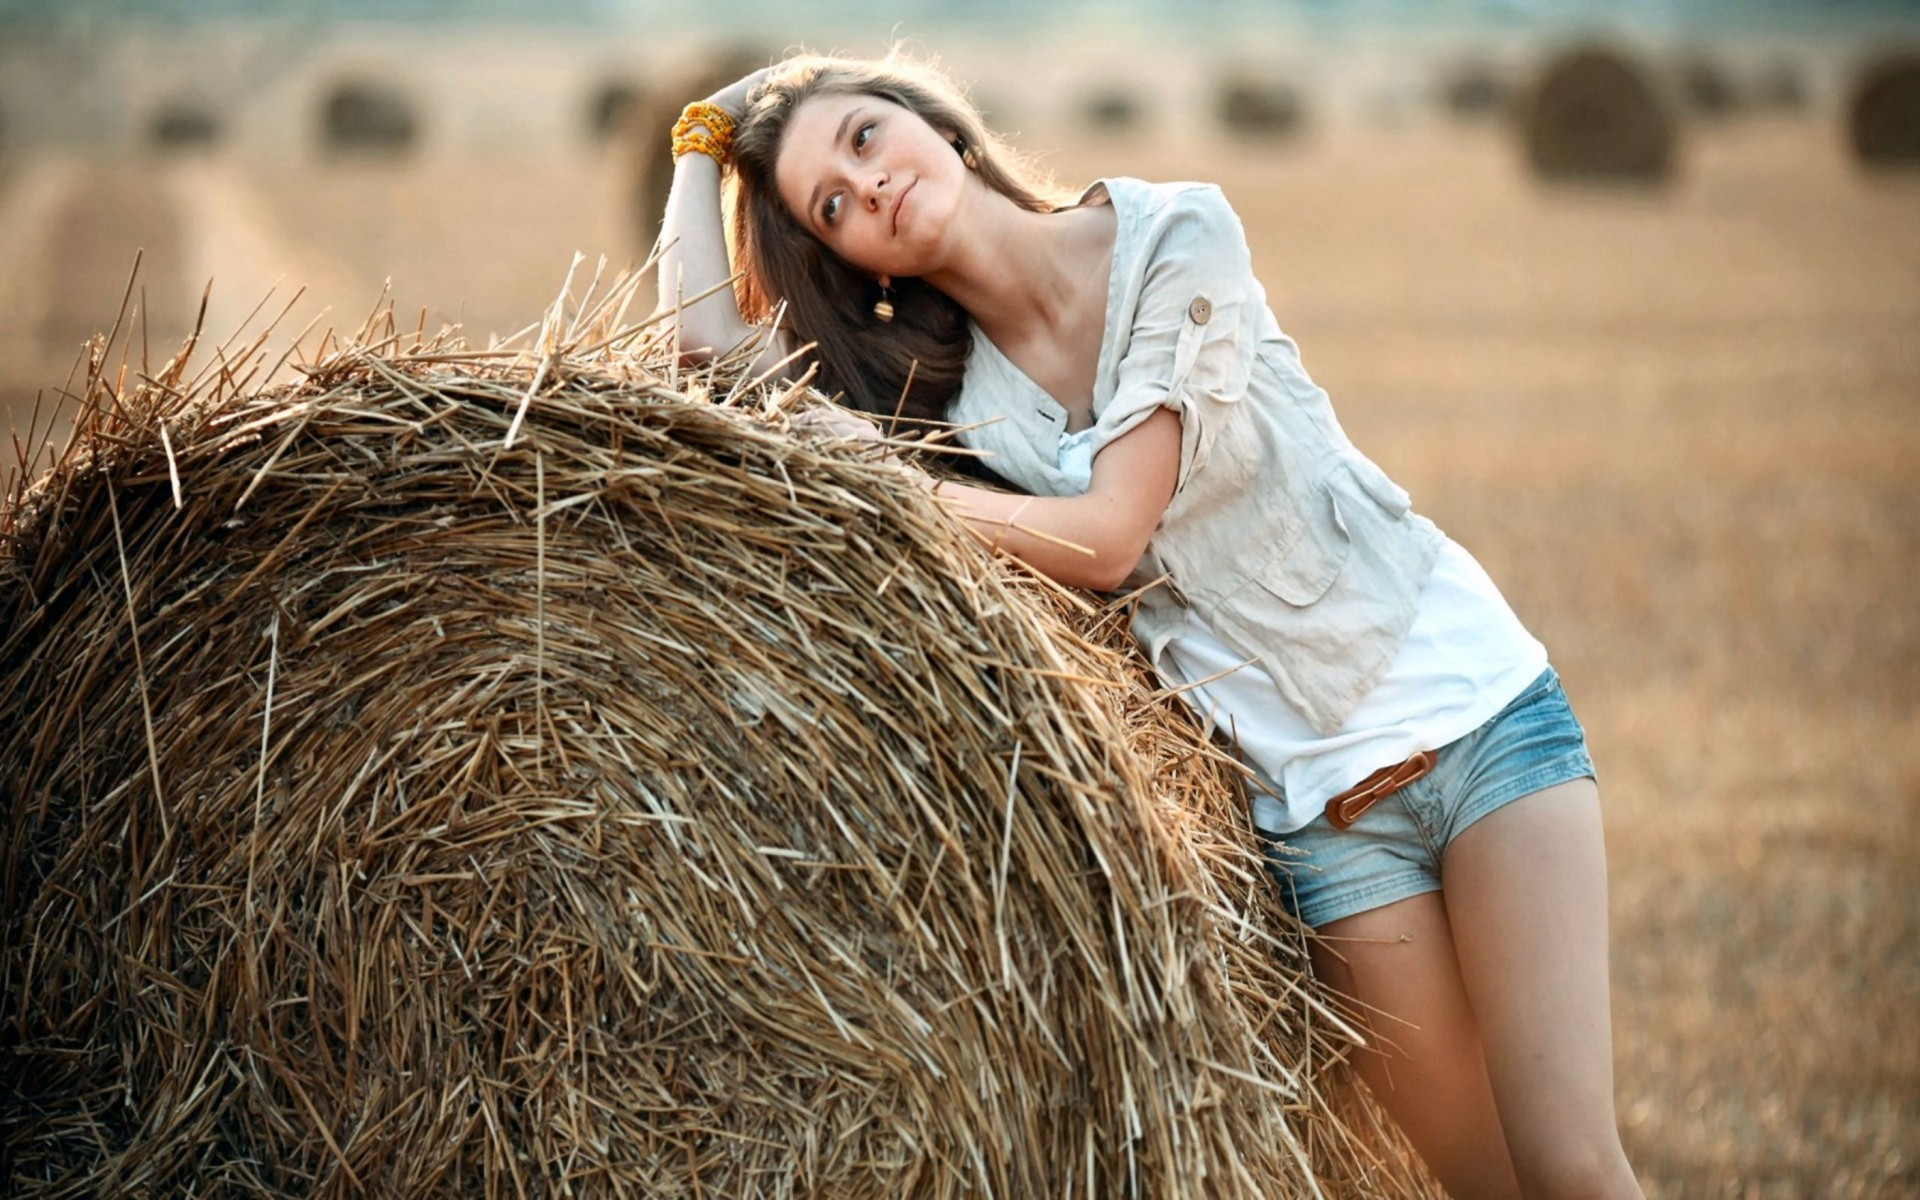 Cowgirl in a Hay Field Wallpaper